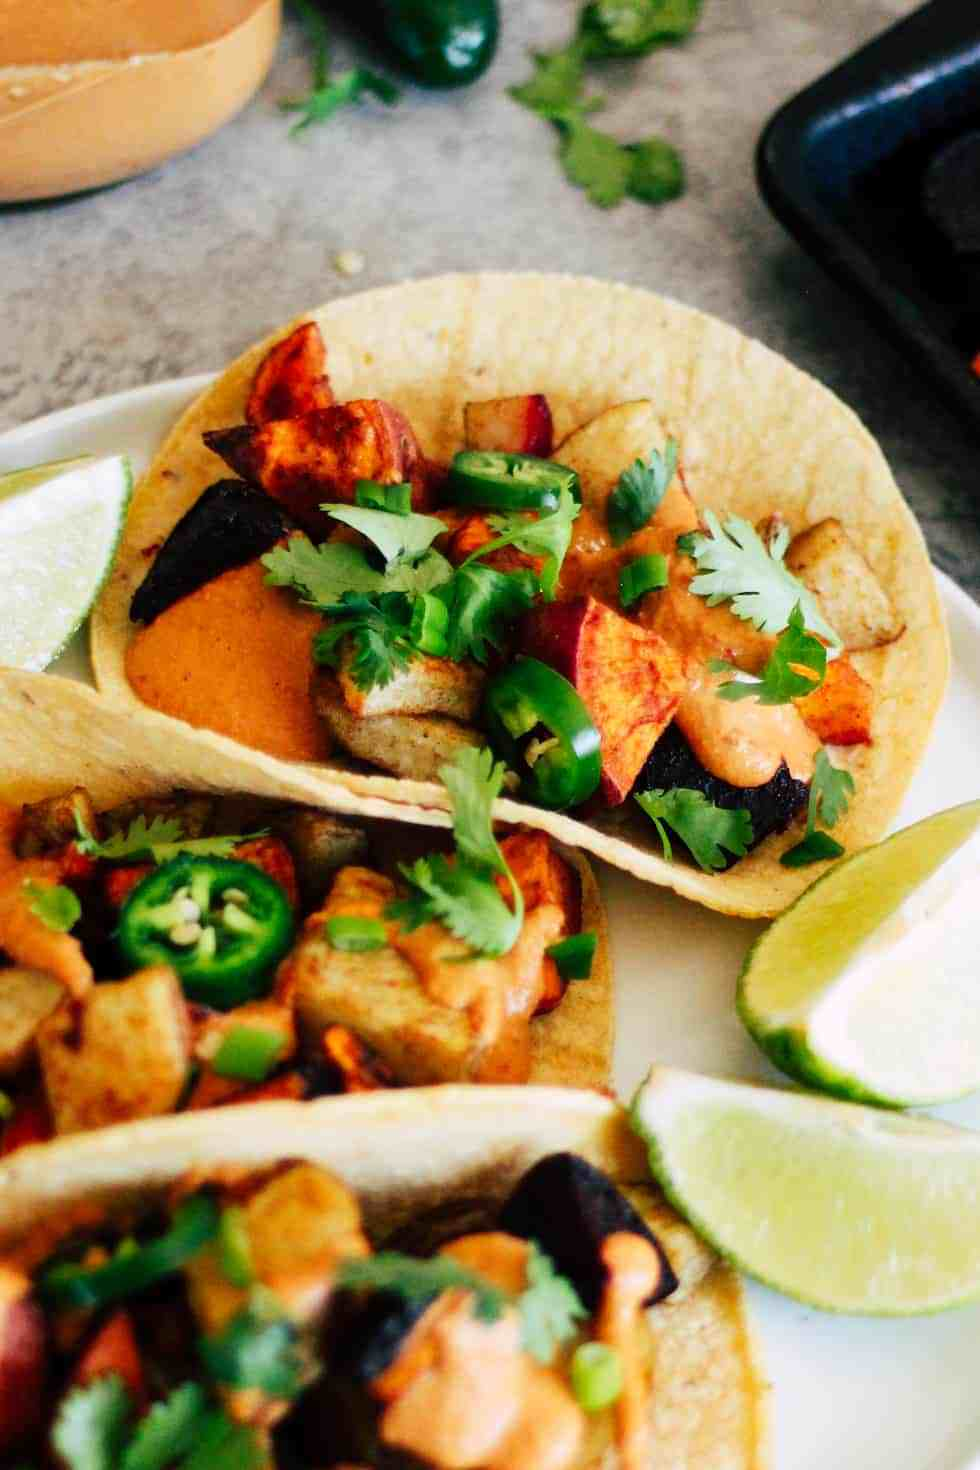 Root vegetable tacos with jalapenos and queso are great for easy college meals